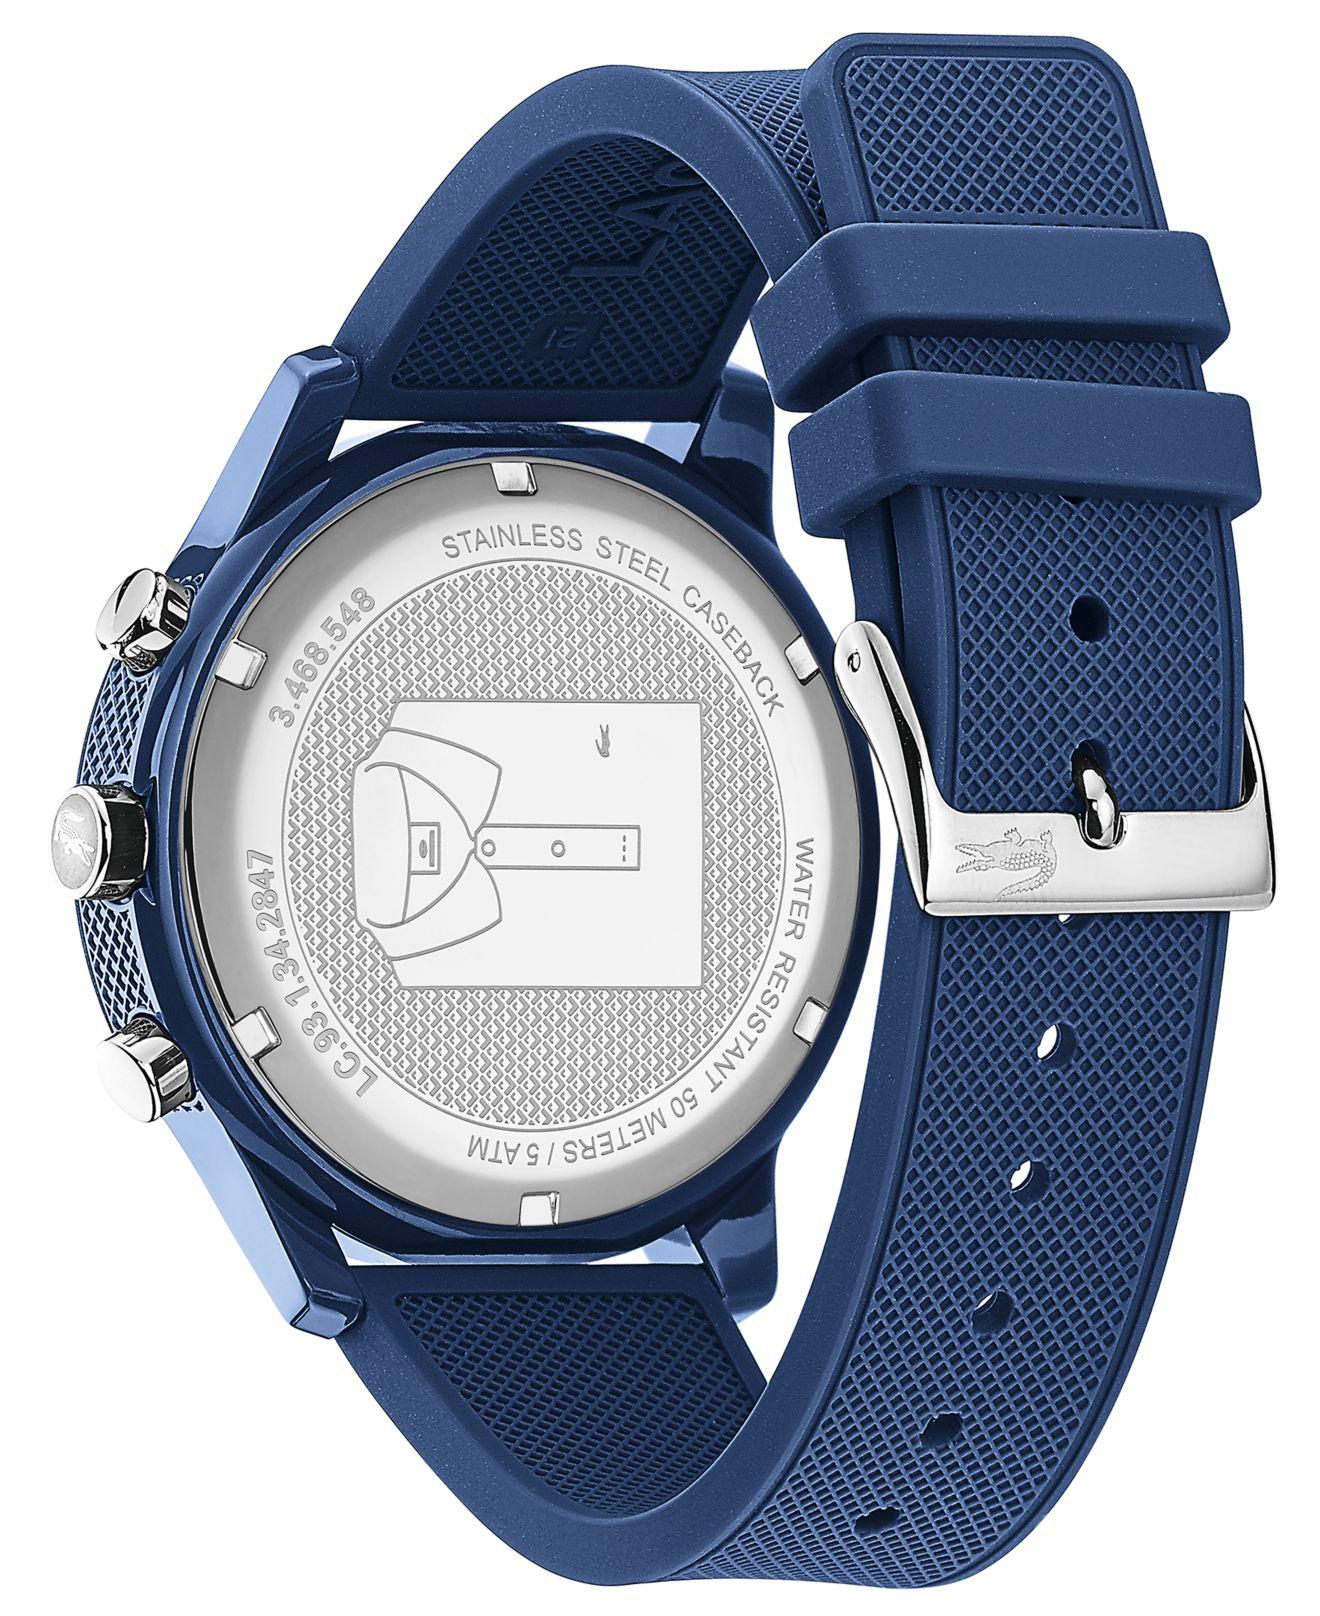 Lacoste - 12.12 Chronograph Watch With Blue Silicone Strap for Men - Lyst. View fullscreen